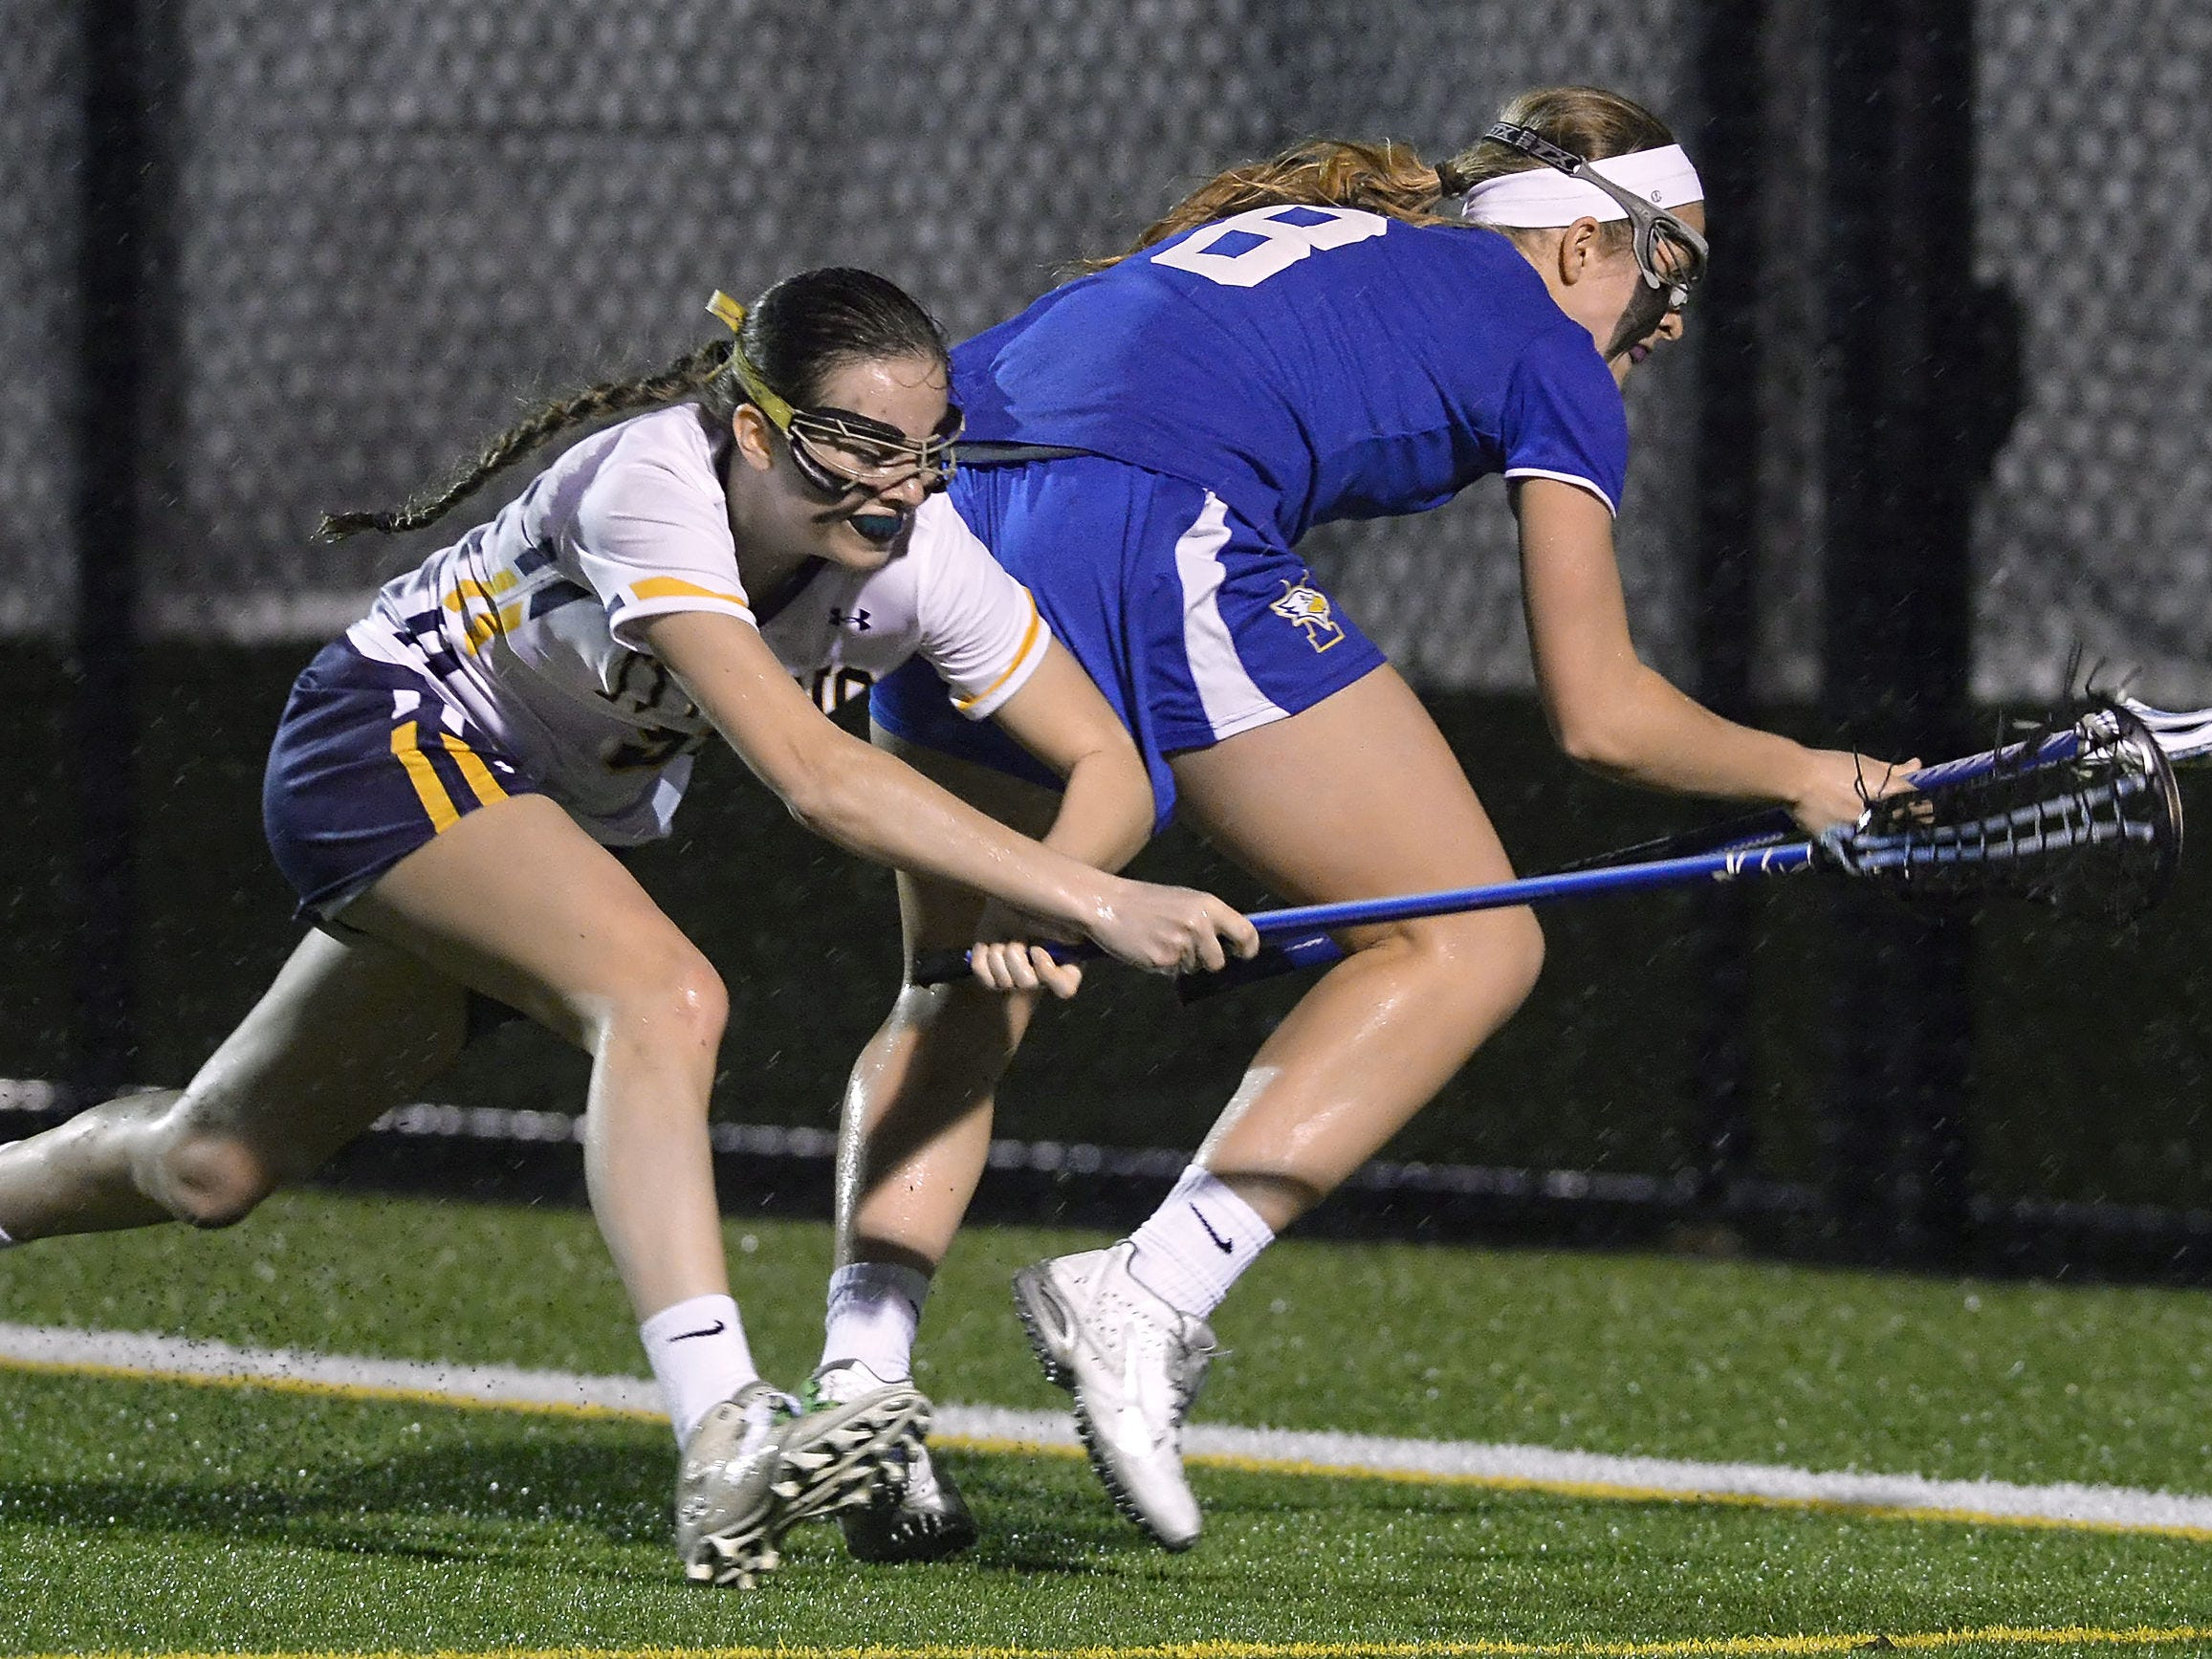 Webster Thomas' Marley Morrill, left, challenges Irondequoit's Jourdan Roemer for the ball.